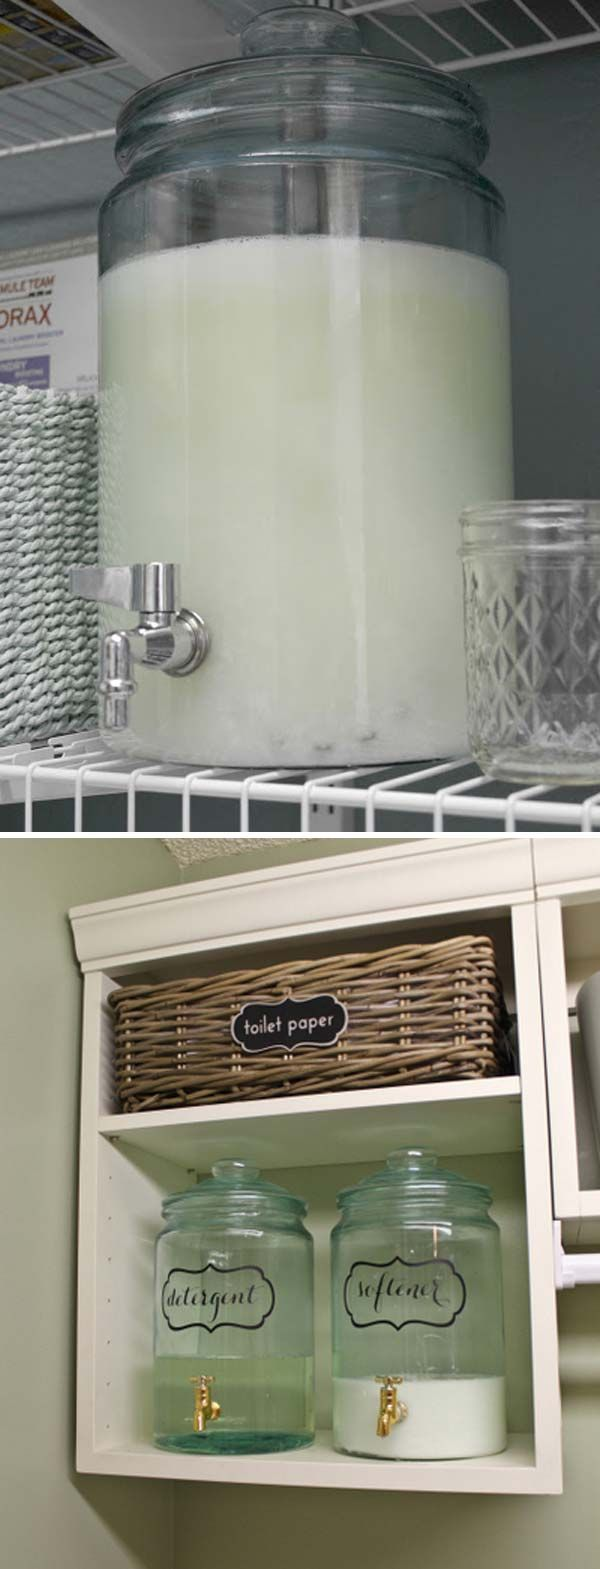 Make inexpensive homemade laundry detergent and then place it in a dispenser.